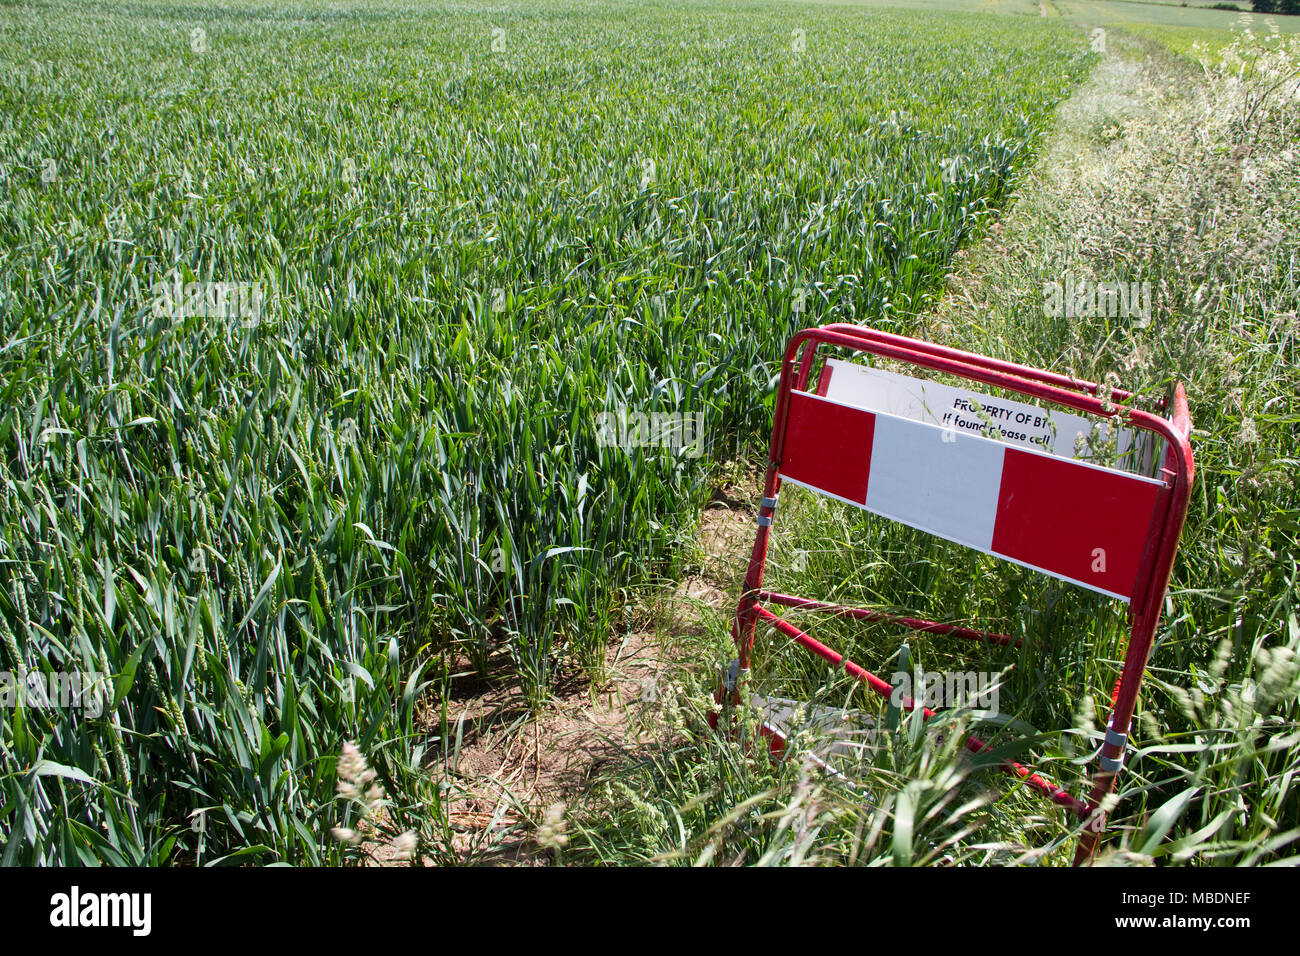 Abandoned and forgotten BT hole in a field - Stock Image